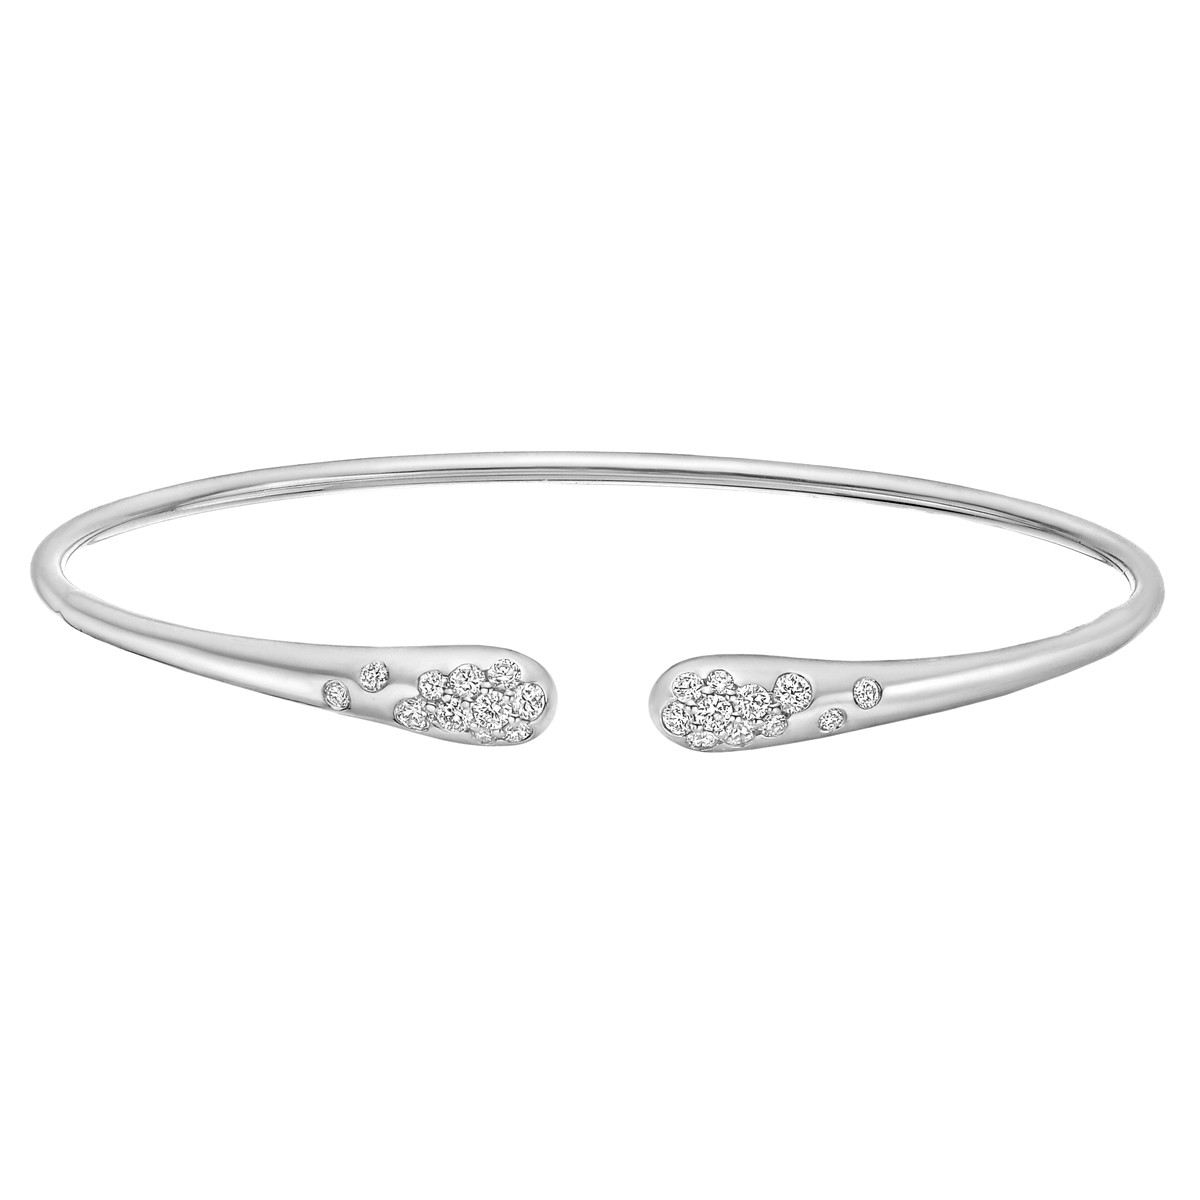 18k White Gold & Diamond Sprinkle Cuff